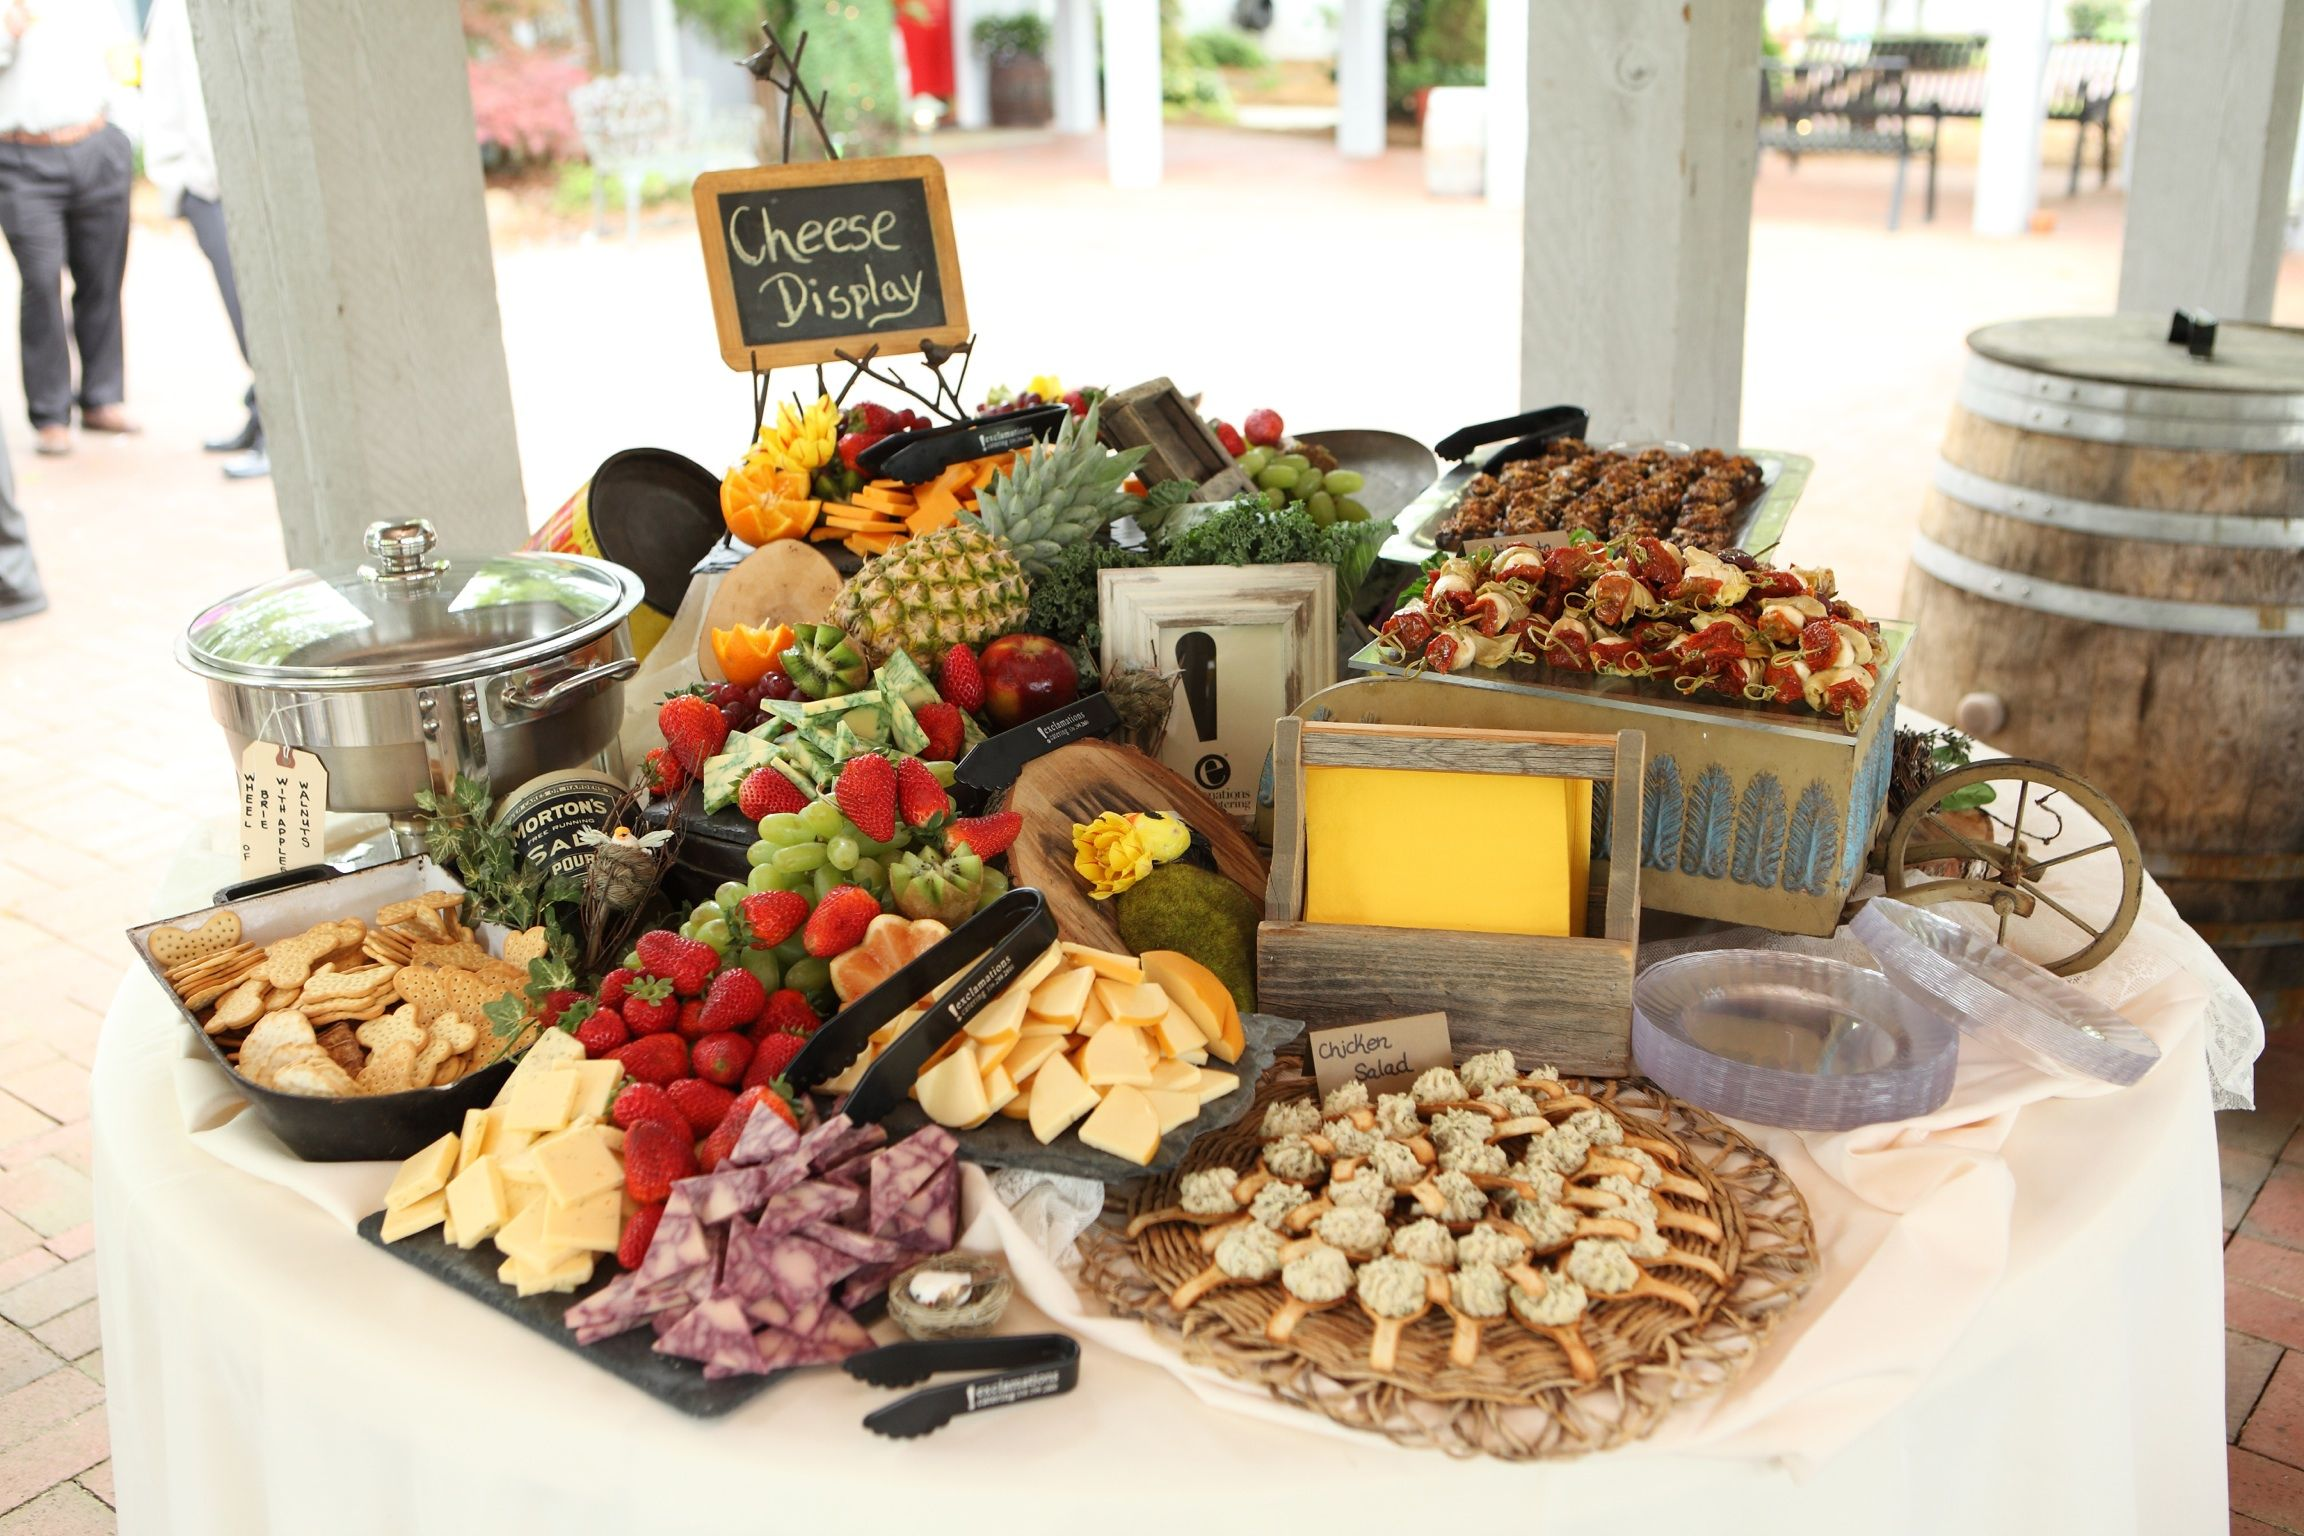 Receptions Food Displays And Prime Time On Pinterest: Perfect Display Of Cheese, Crackers, Fruit, Finger Foods